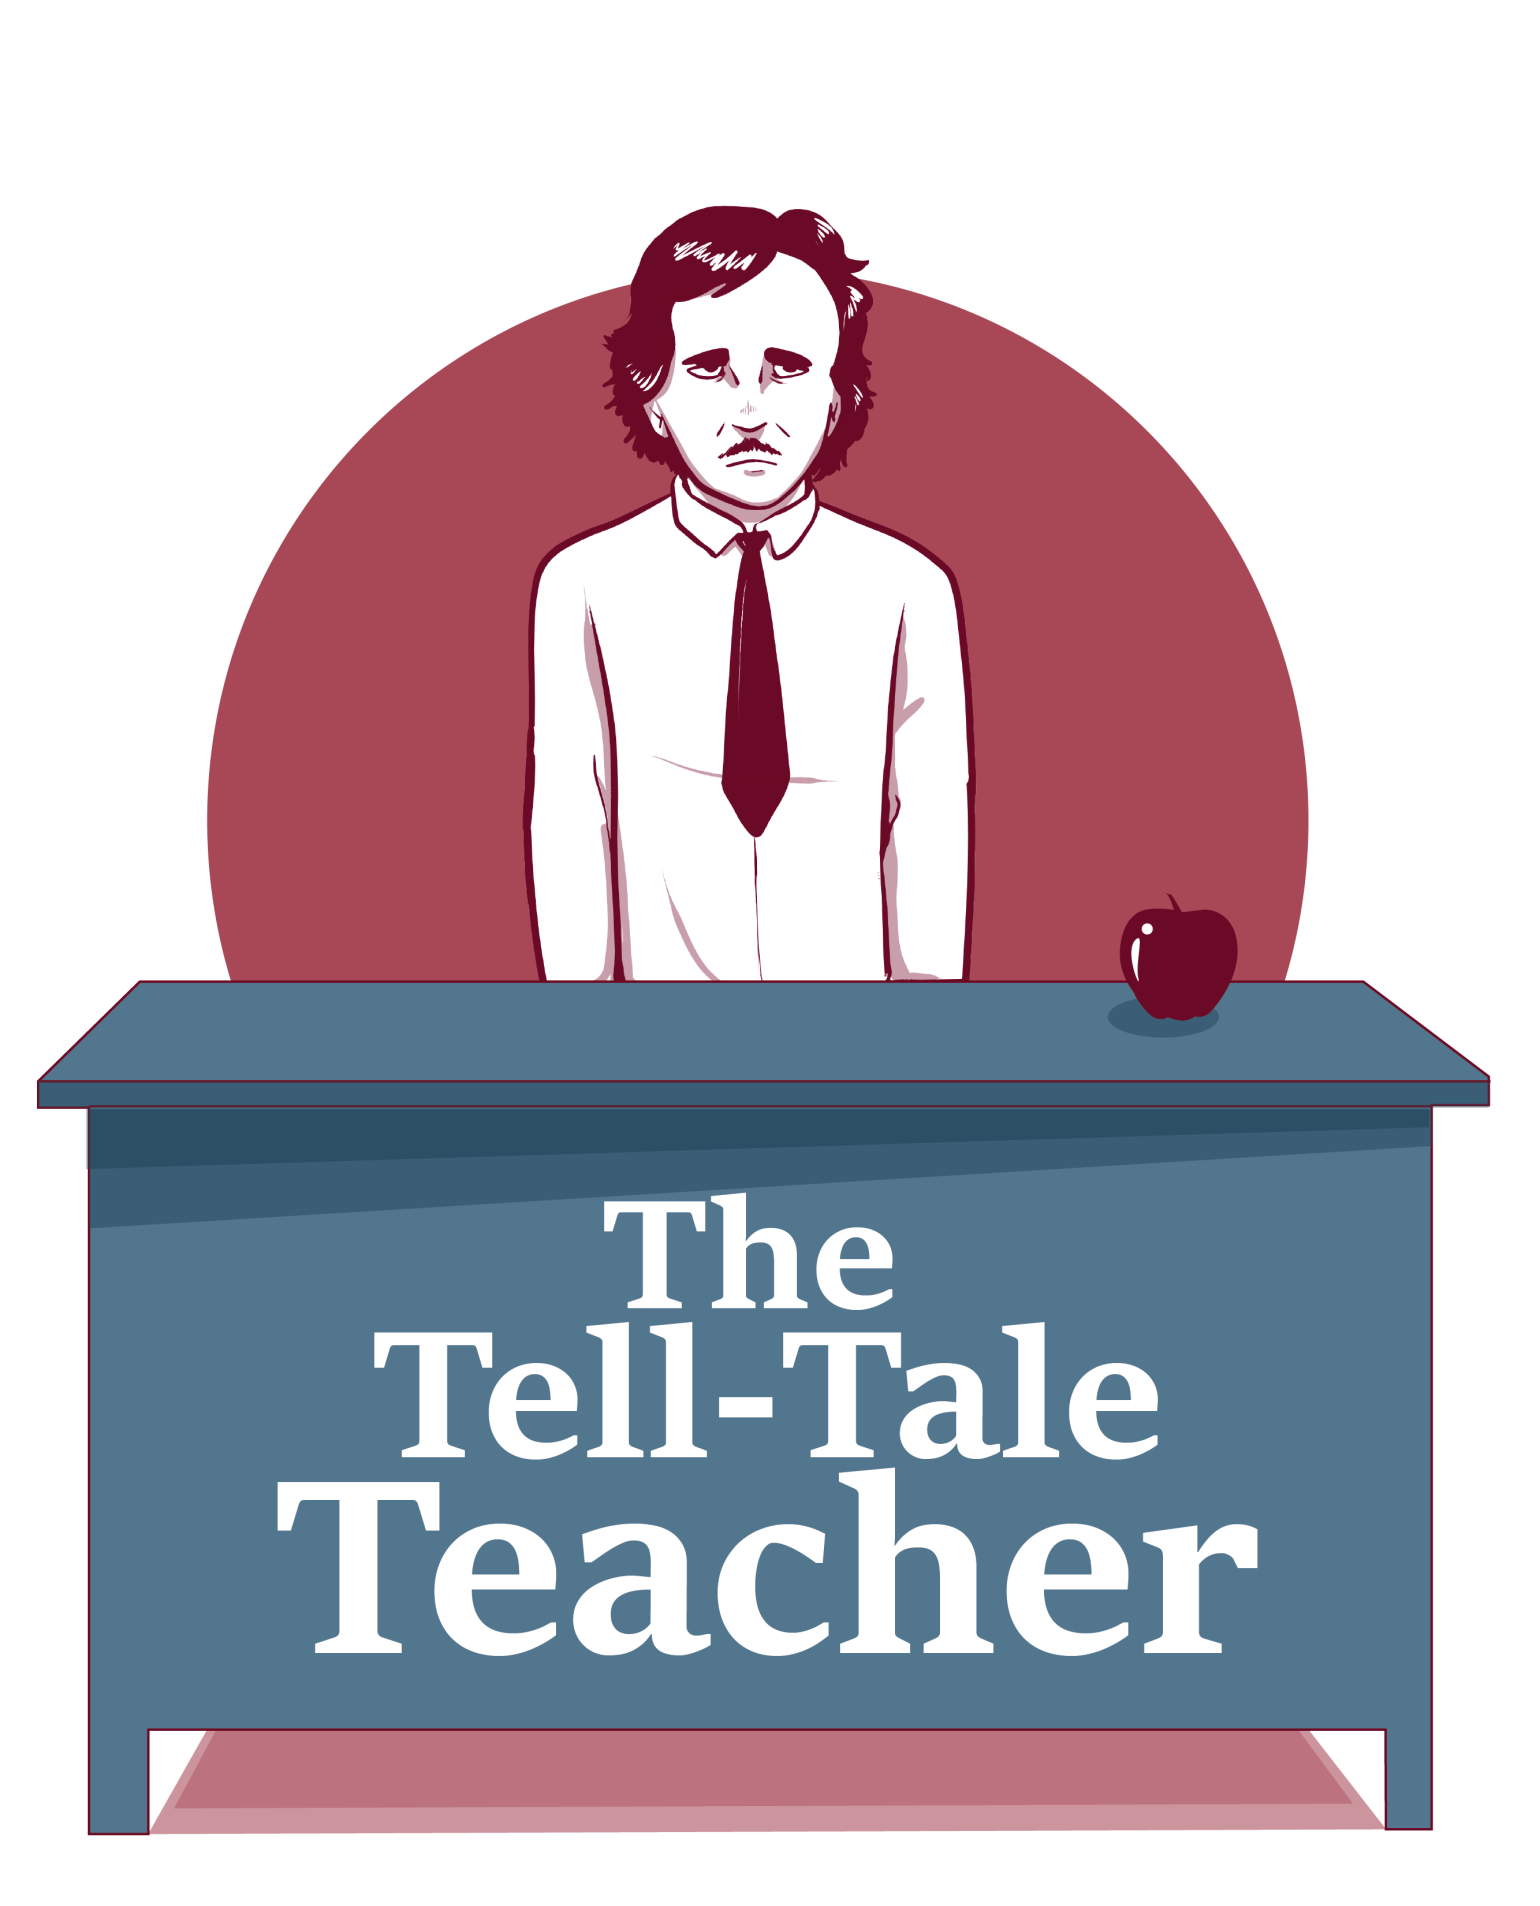 The tell tale teacher